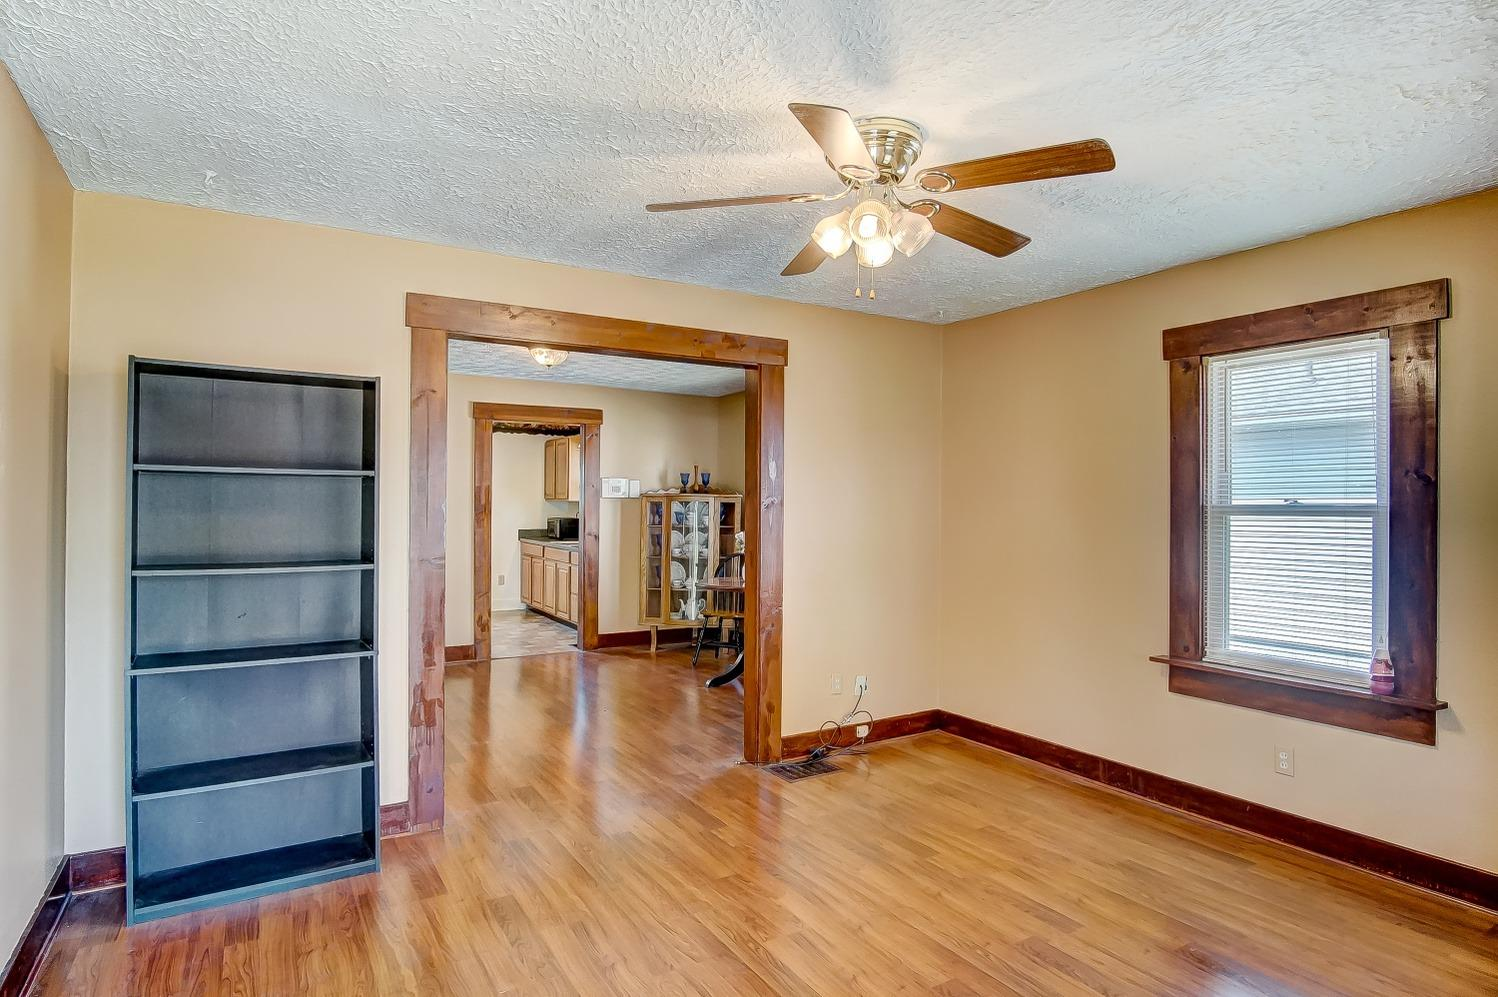 Photo 3 for 2110 Titus Ave Montgomery Co., OH 45414